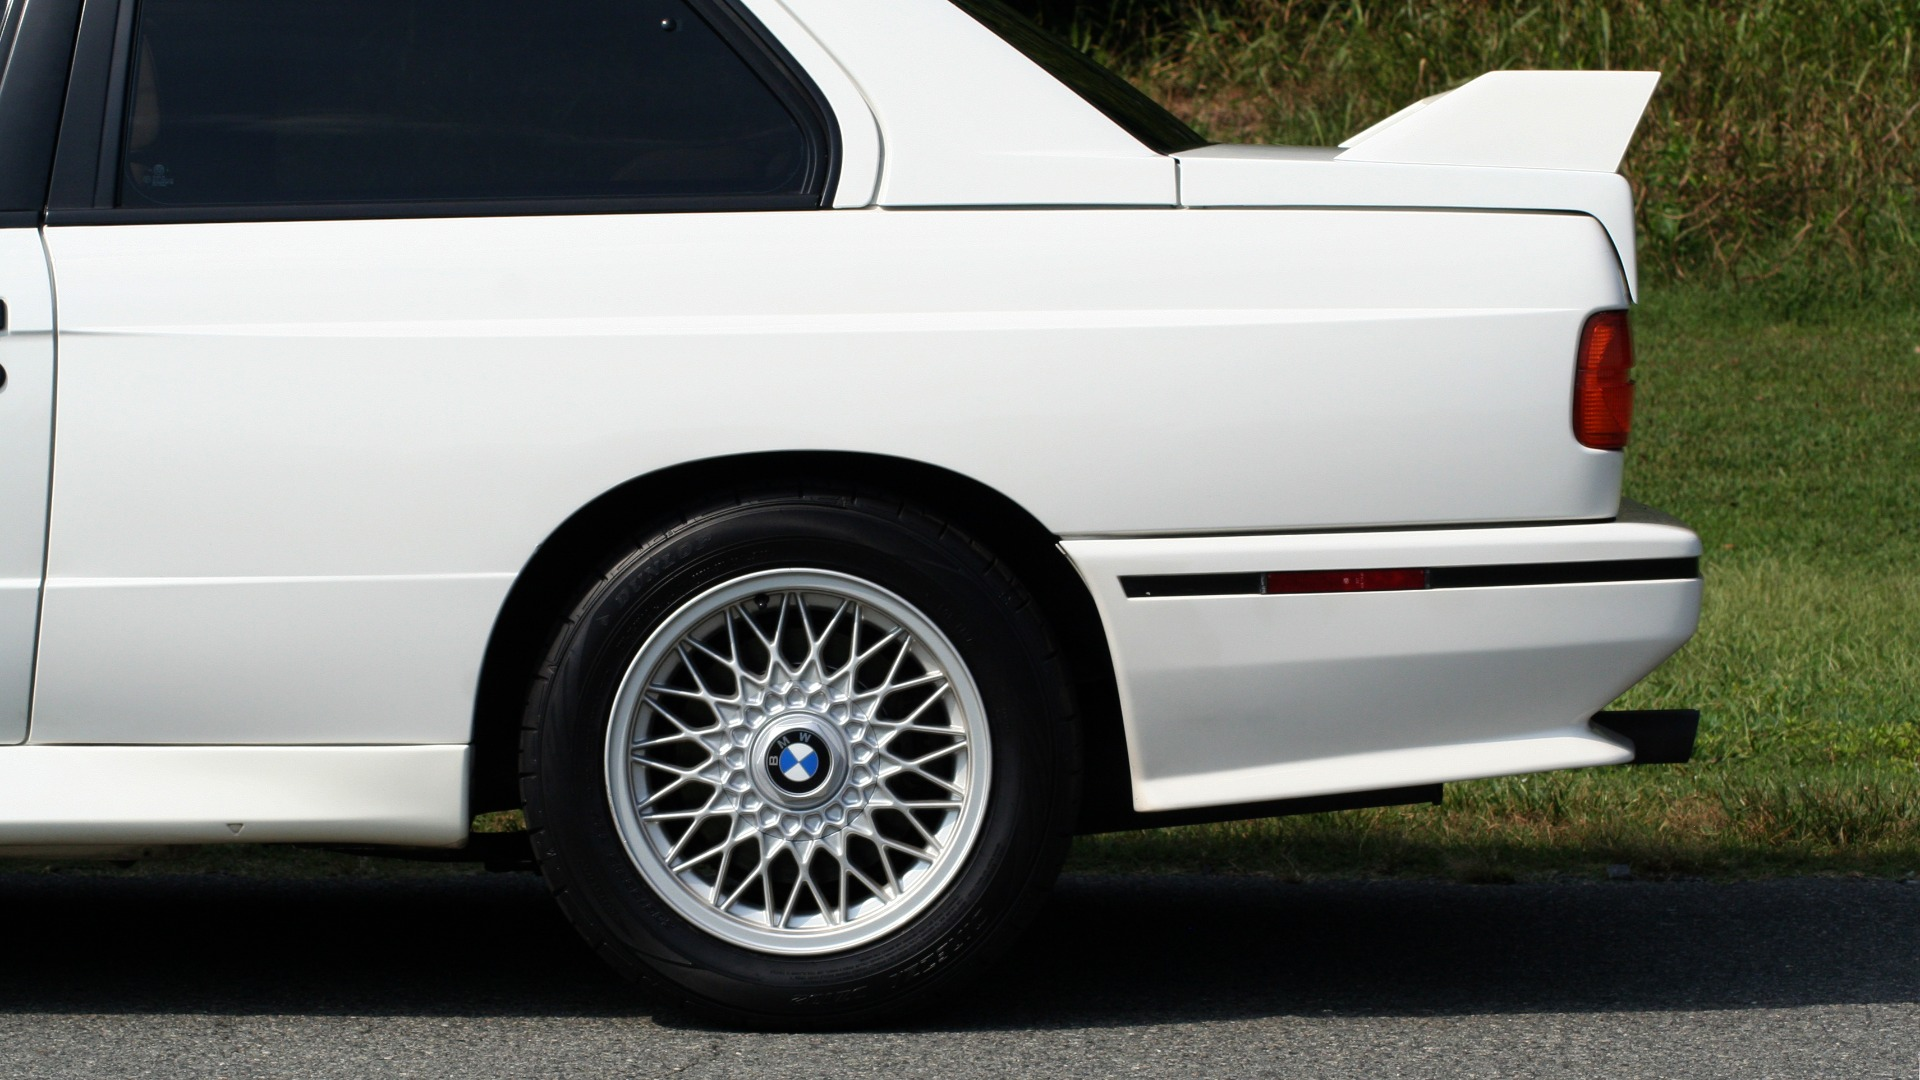 Used 1989 BMW M3 COUPE 2DR / 5-SPEED MAN / LOW MILES / SUPER CLEAN for sale Sold at Formula Imports in Charlotte NC 28227 6